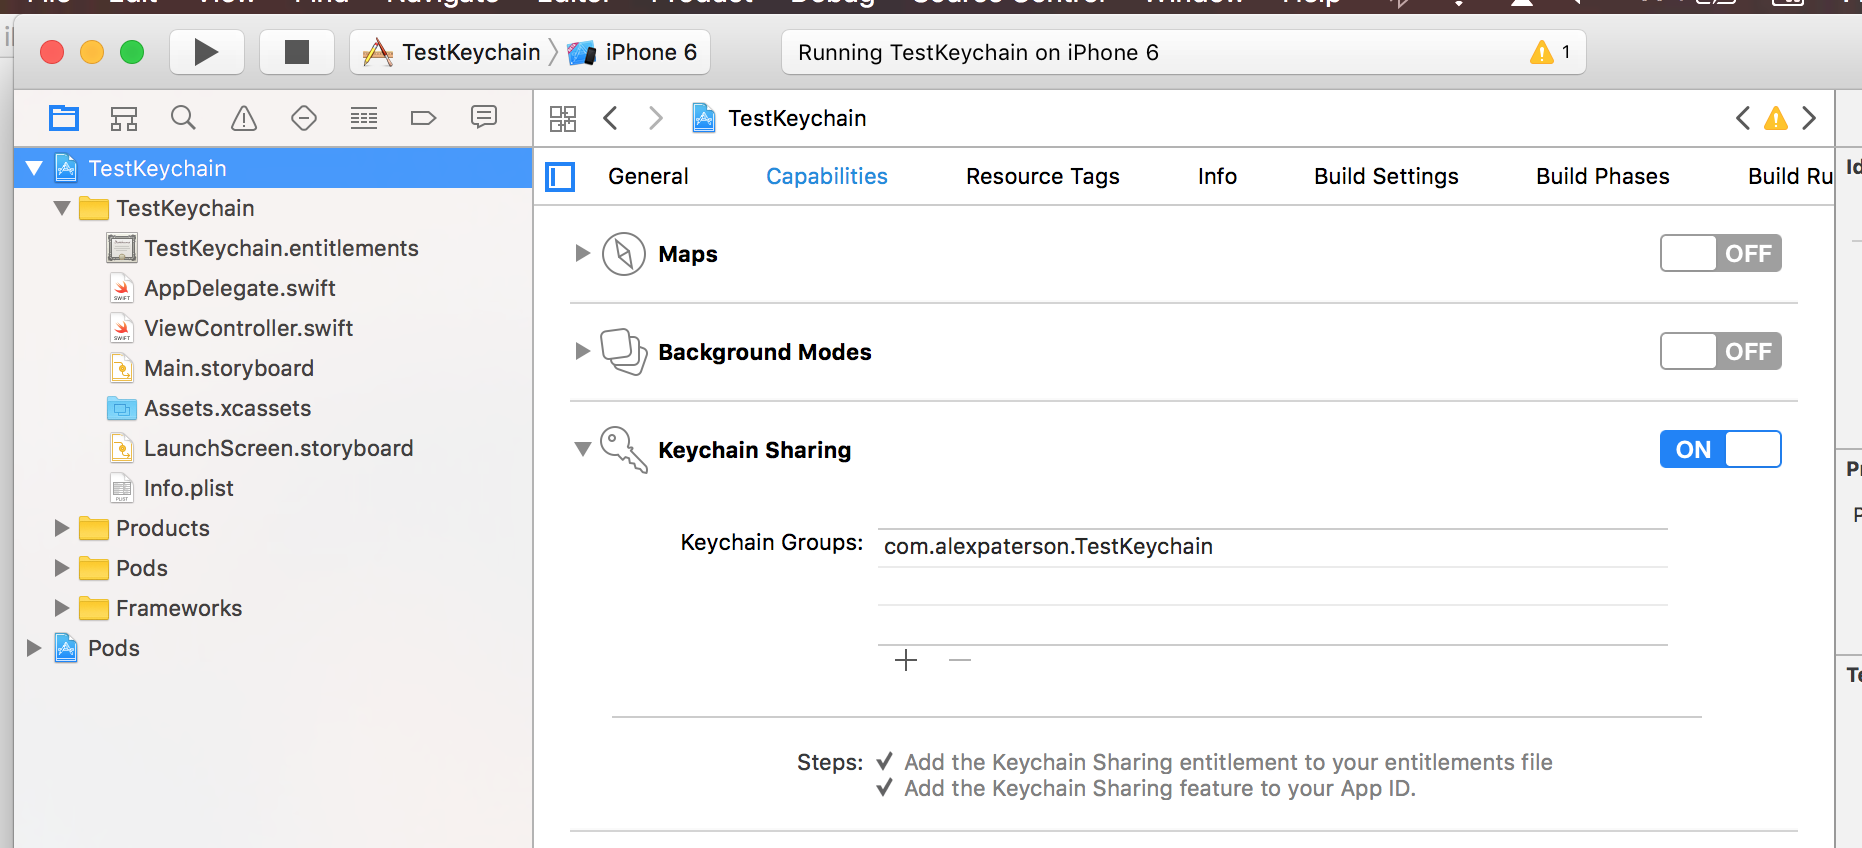 Enable Keychain Sharing